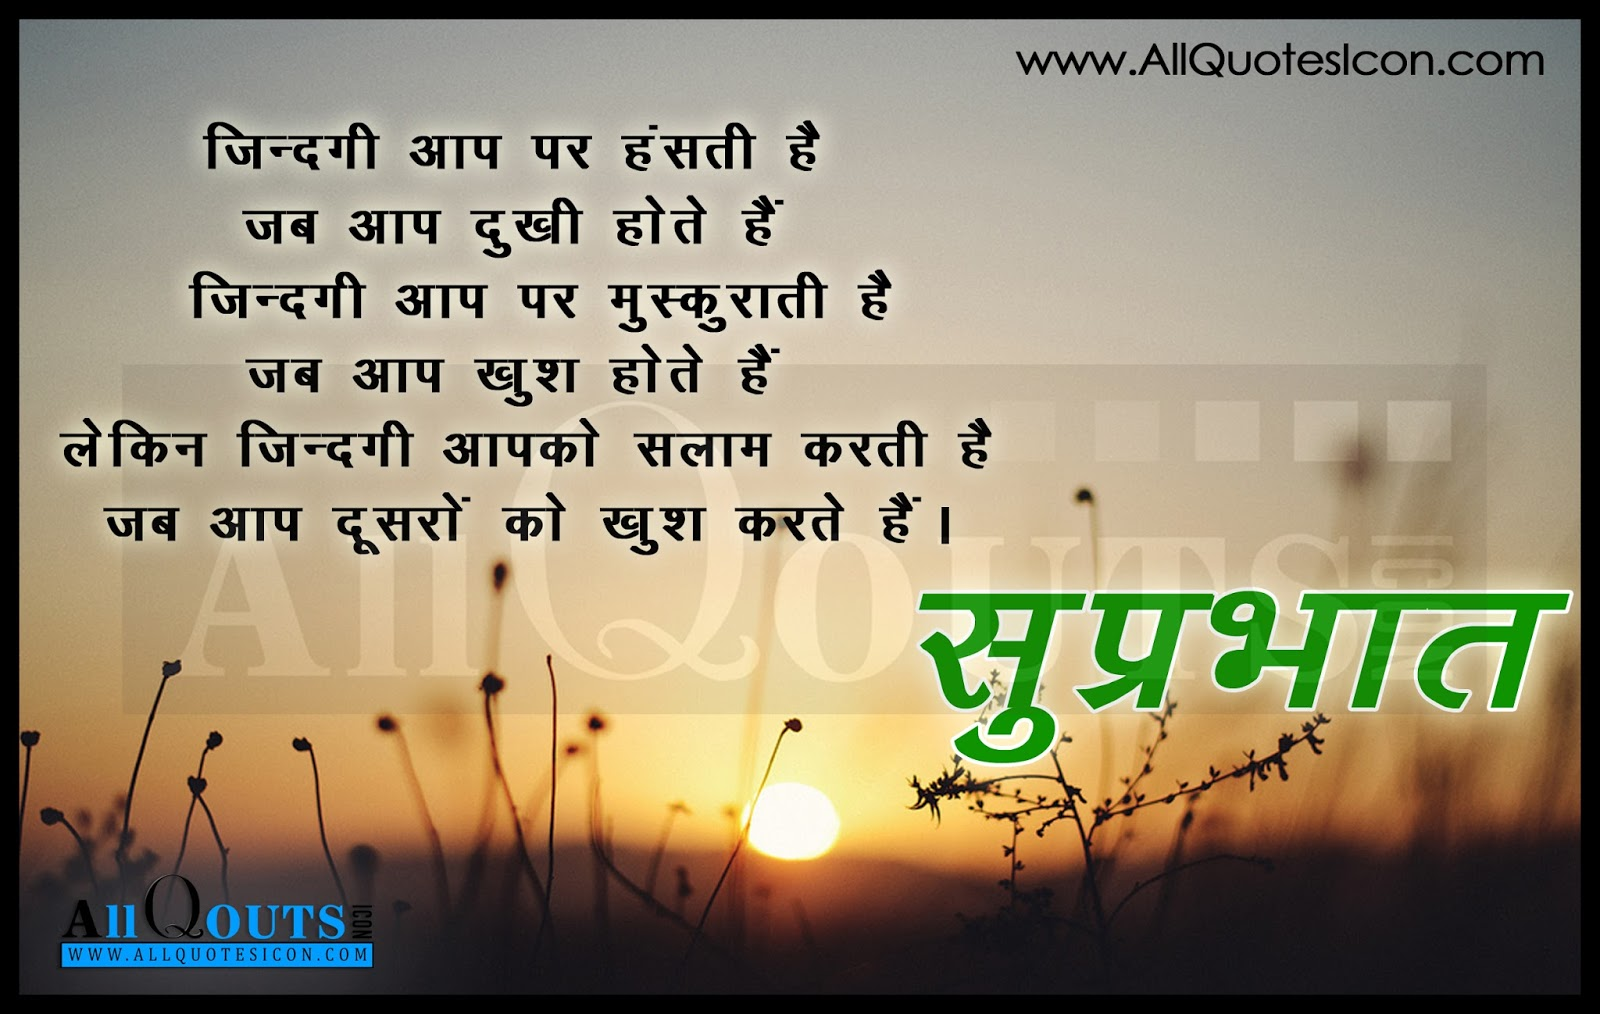 Good Morning Image With Quotes In Hindi Shareimages Co